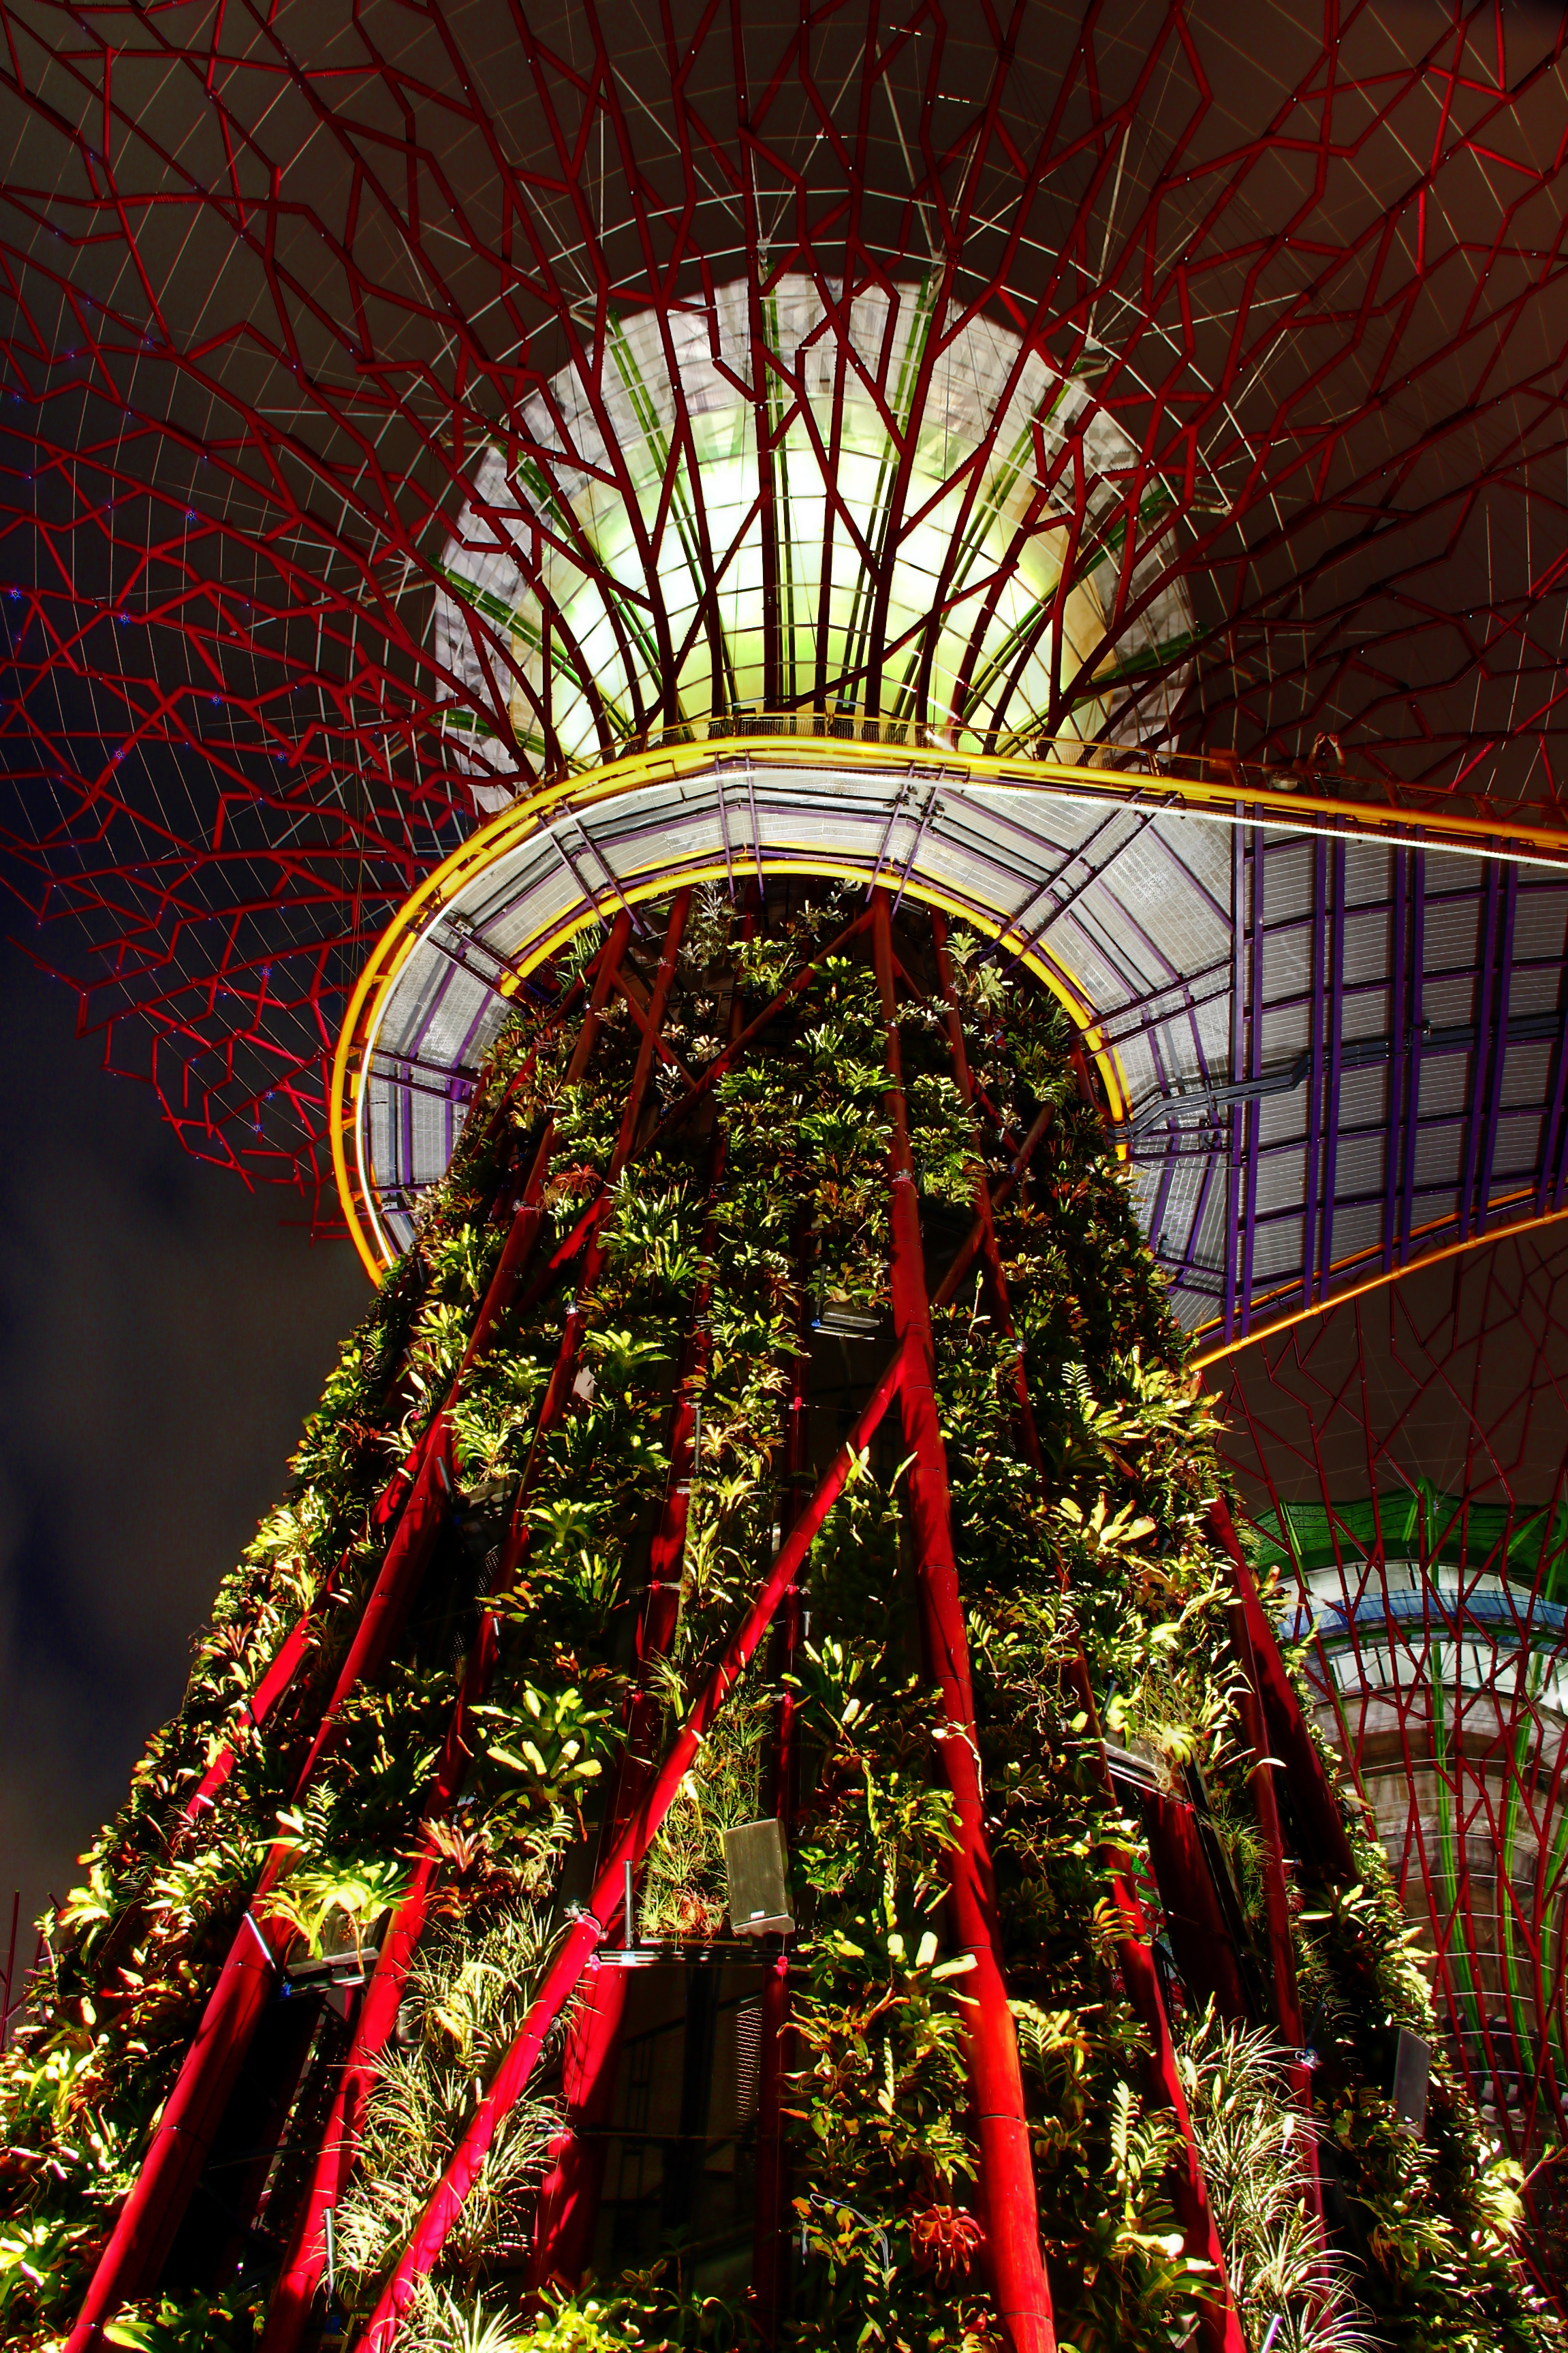 File:Supertree Grove, Gardens by the Bay, Singapore - 20120726-03 ...